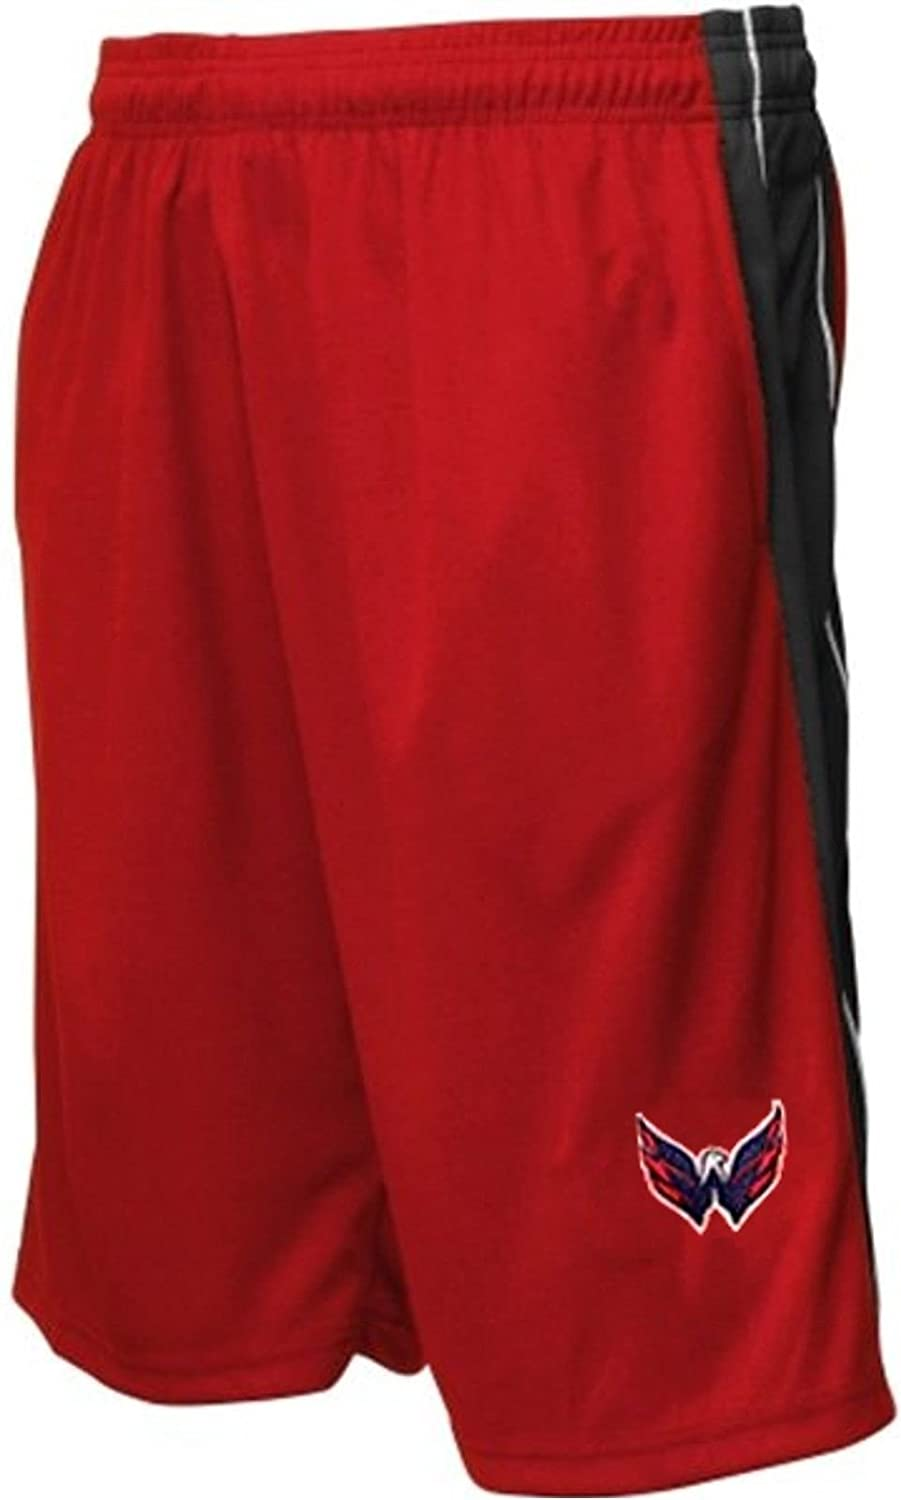 0895250ec48 Amazon.com   Majestic Washington Capitals NHL Embroidered Logo Synthetic  Shorts Red Big Sizes (6XL)   Sports   Outdoors